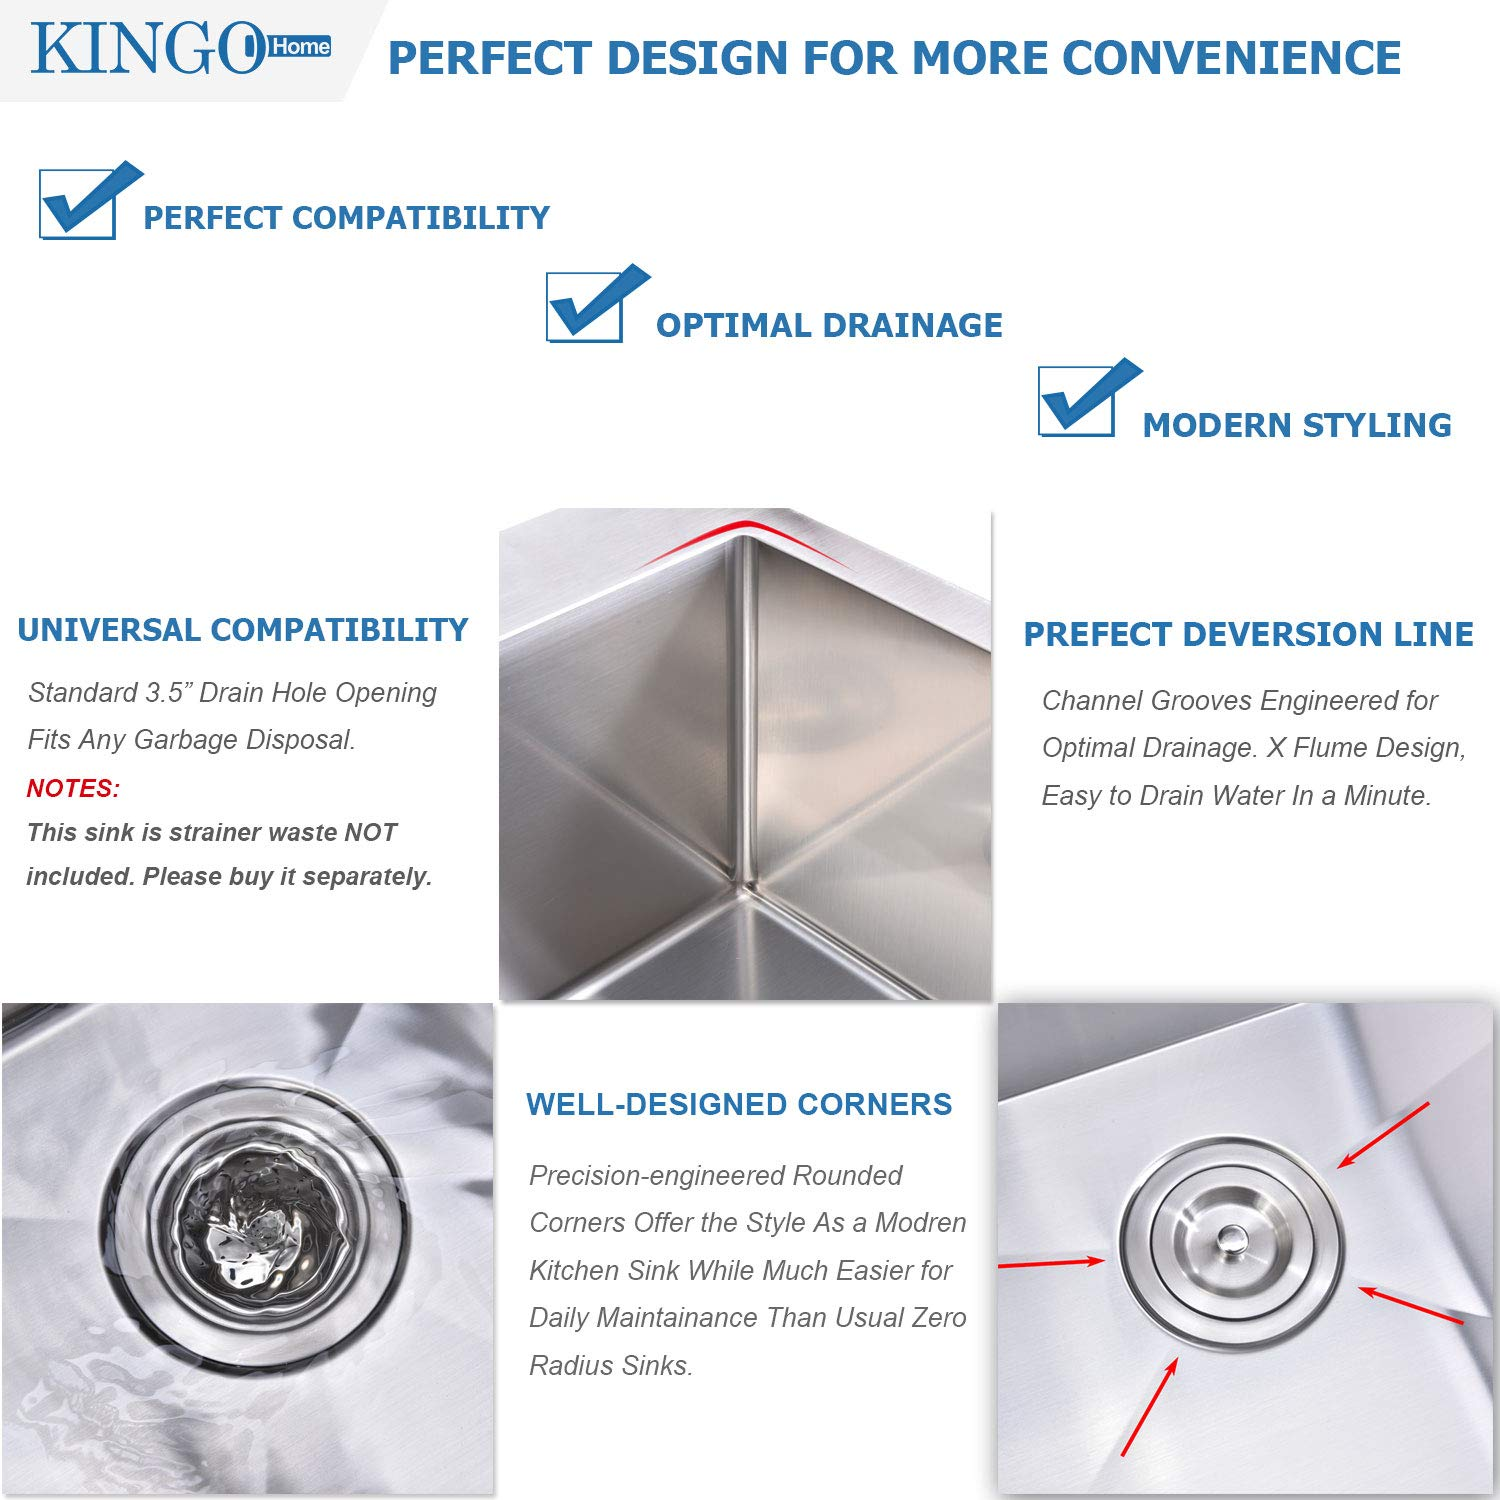 KINGO HOME Commercial 33''x 22'' Inch 10 Inch Extra Deep Handmade Top Mount T304 Stainless Steel Drop-In Single Bowl Kitchen Sink by KINGO HOME (Image #6)